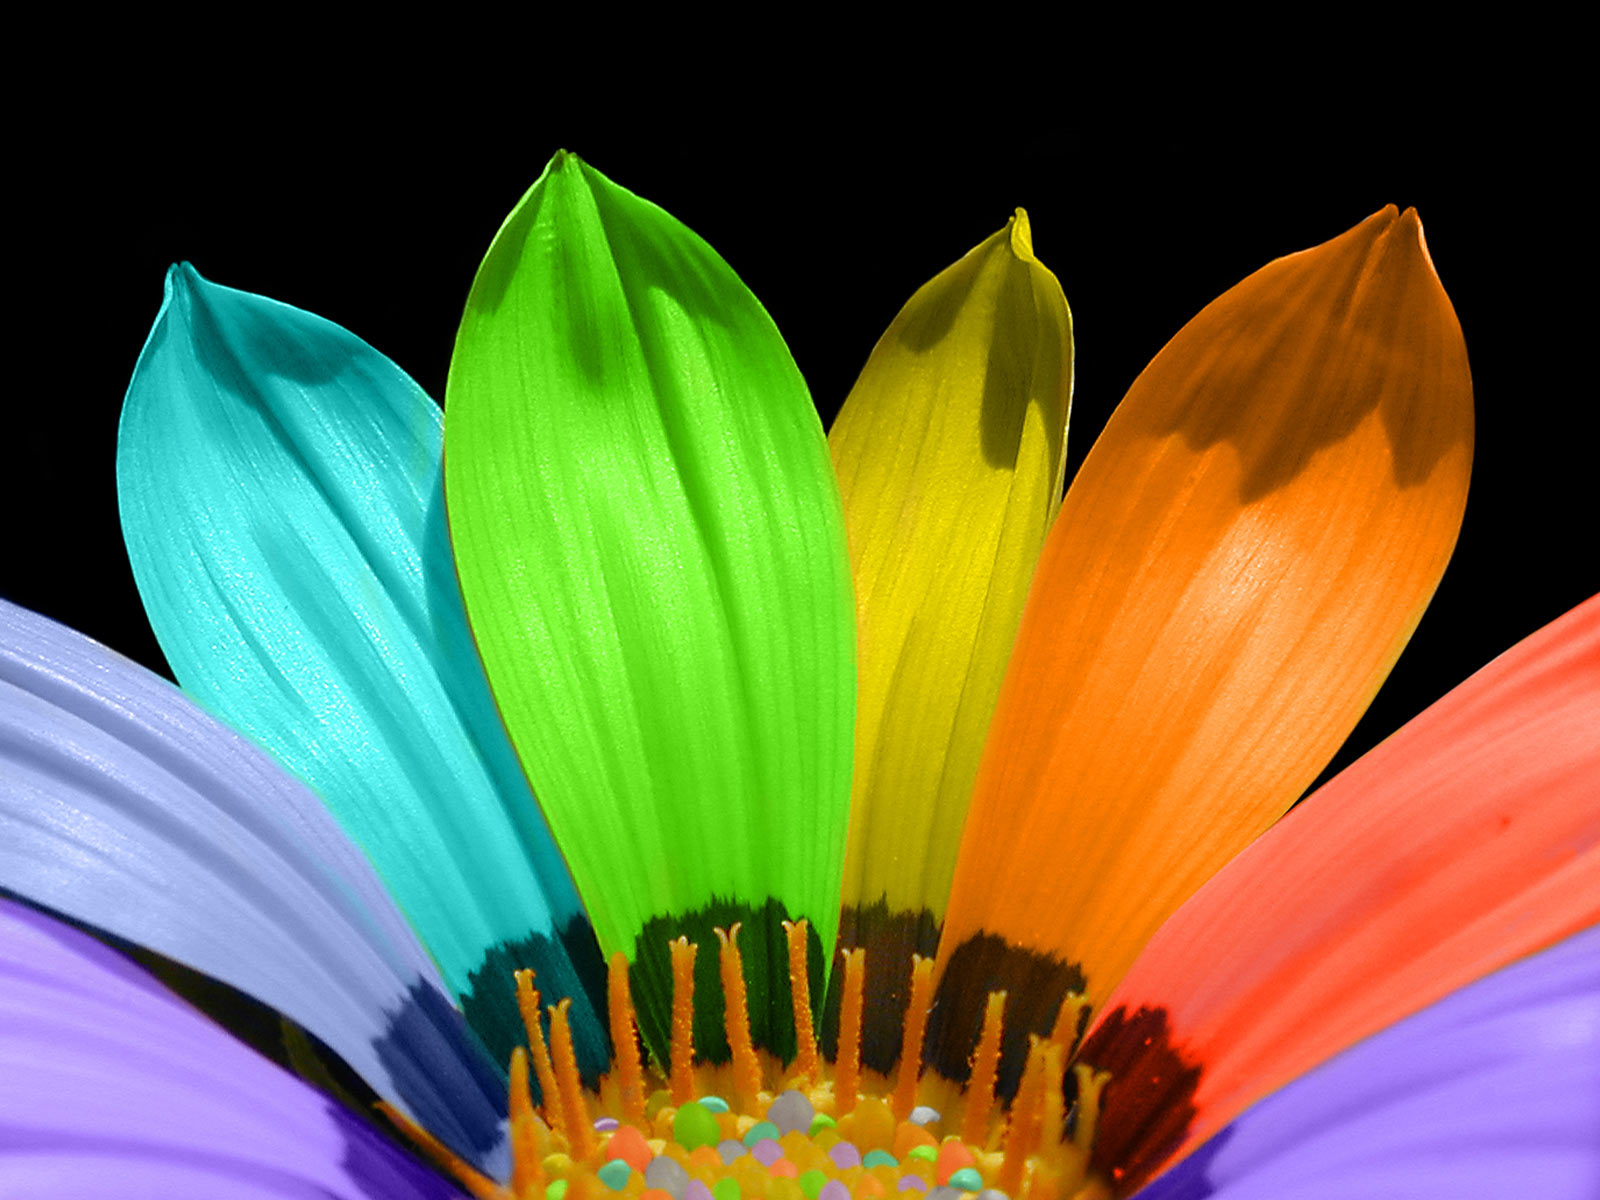 rainbow flowers wallpaper paintings - photo #27